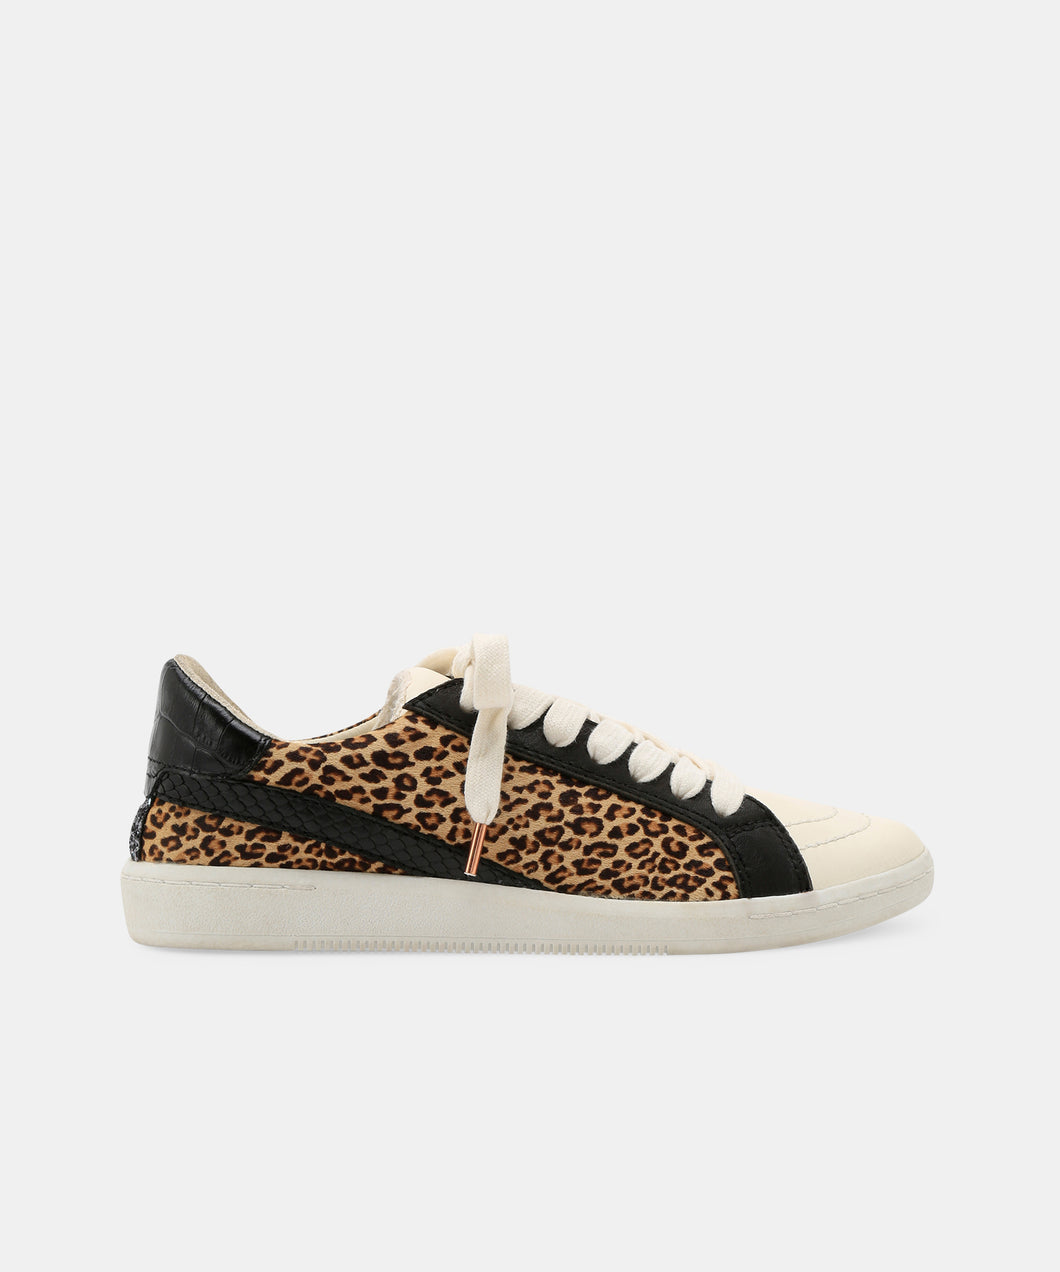 NINO SNEAKERS IN BLACK LEOPARD -   Dolce Vita